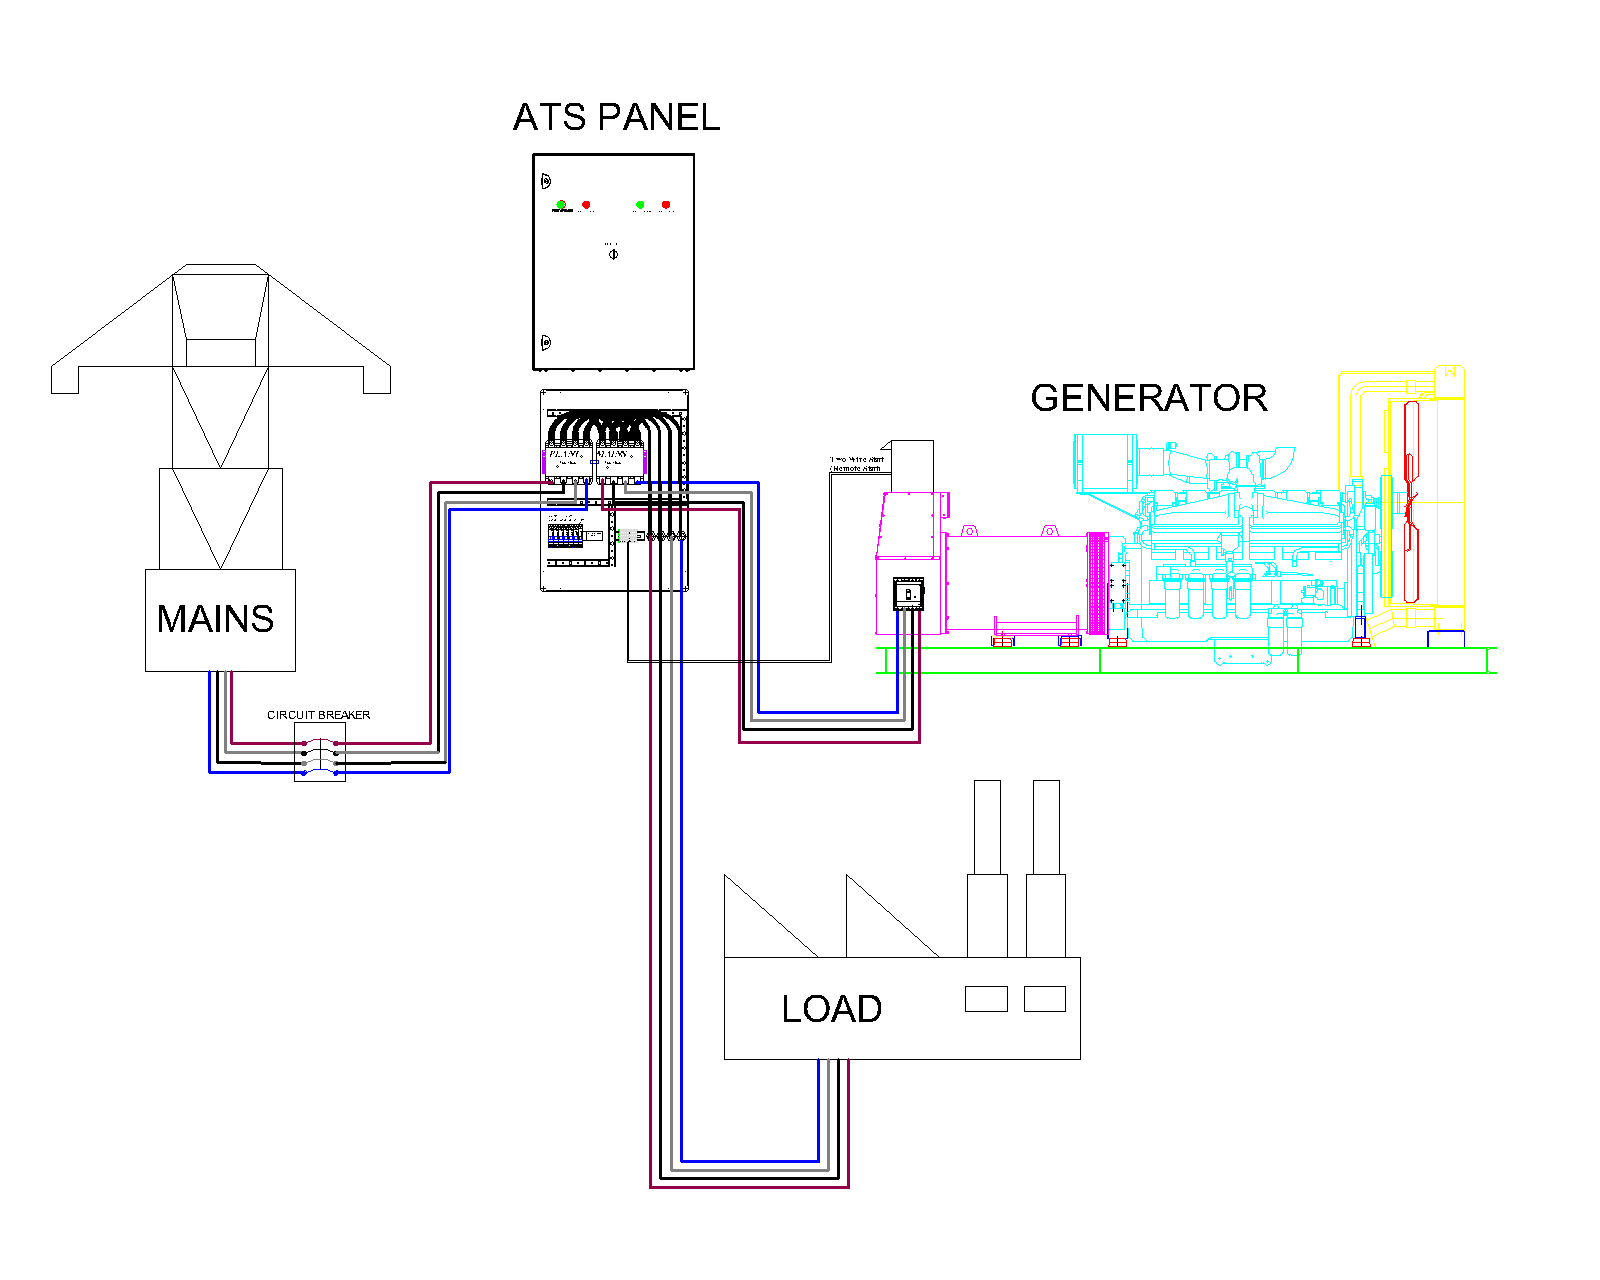 Typical Wiring Generator And Ats Diagram Will Be A Thing For Layout Automatic Transfer Switch Rh Bladespowergeneration Co Uk Abb Motor Distribution Board